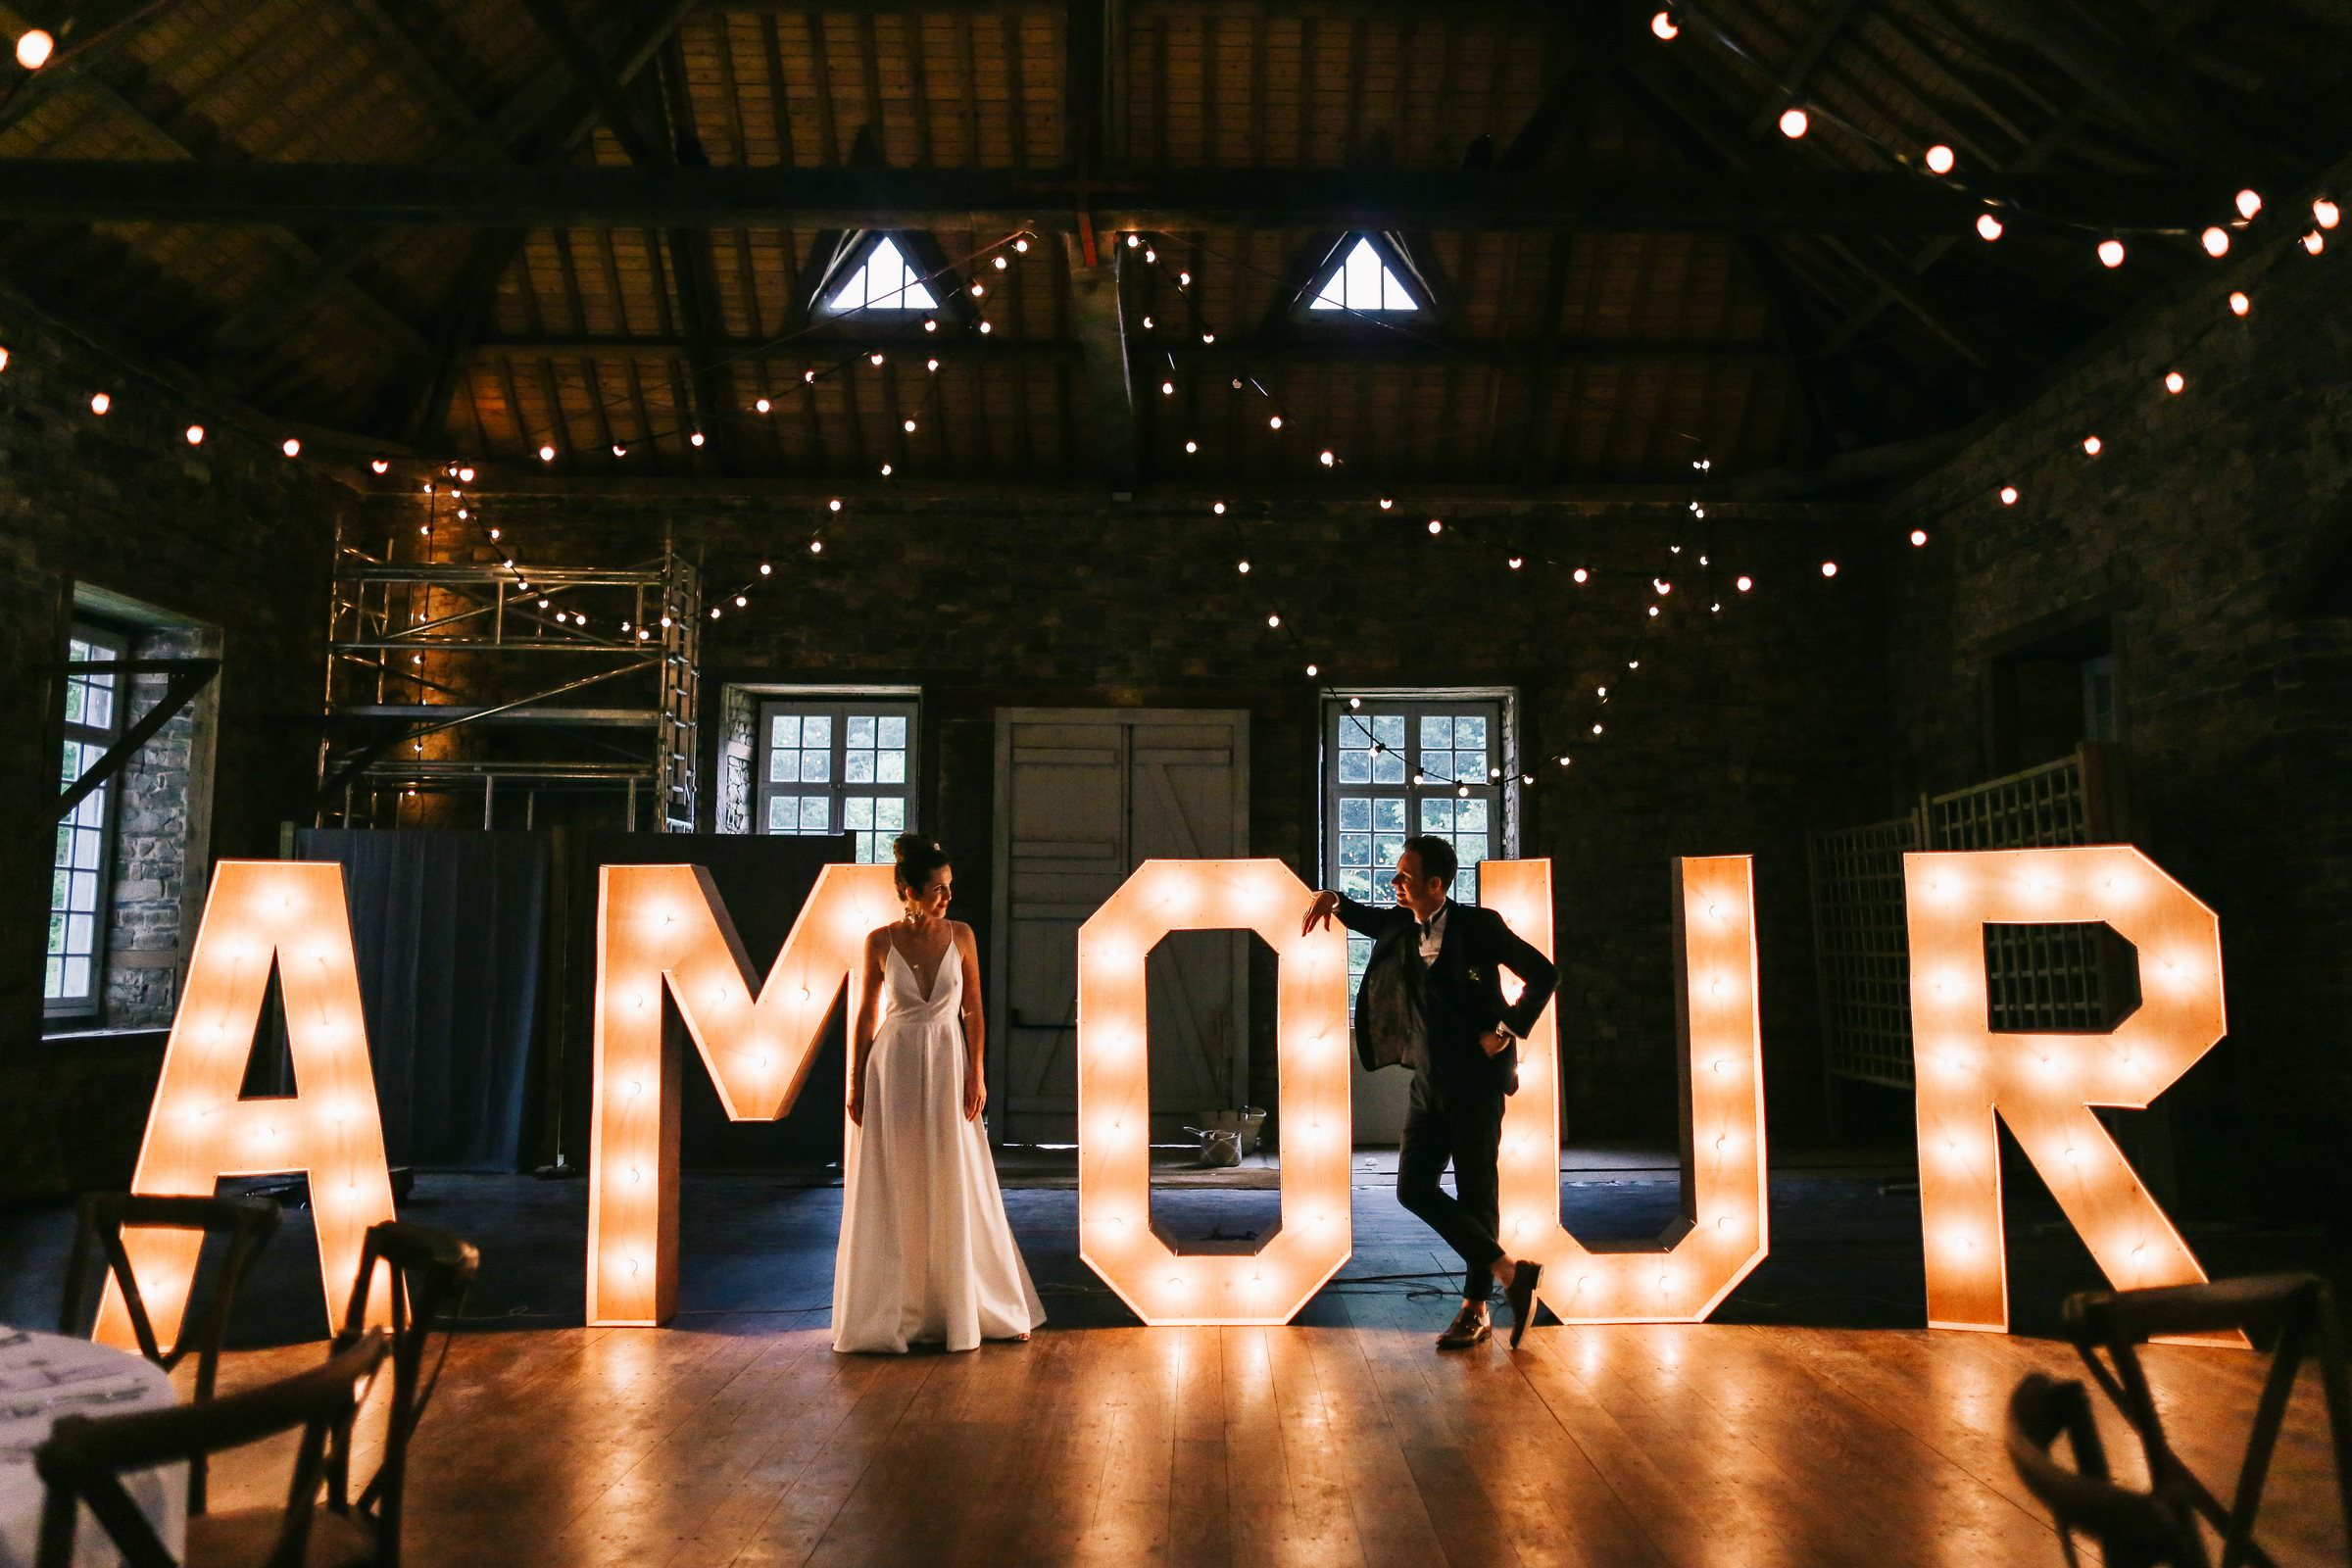 bride and groom portrait in front of light letters- photo by Amandine Ropars, france